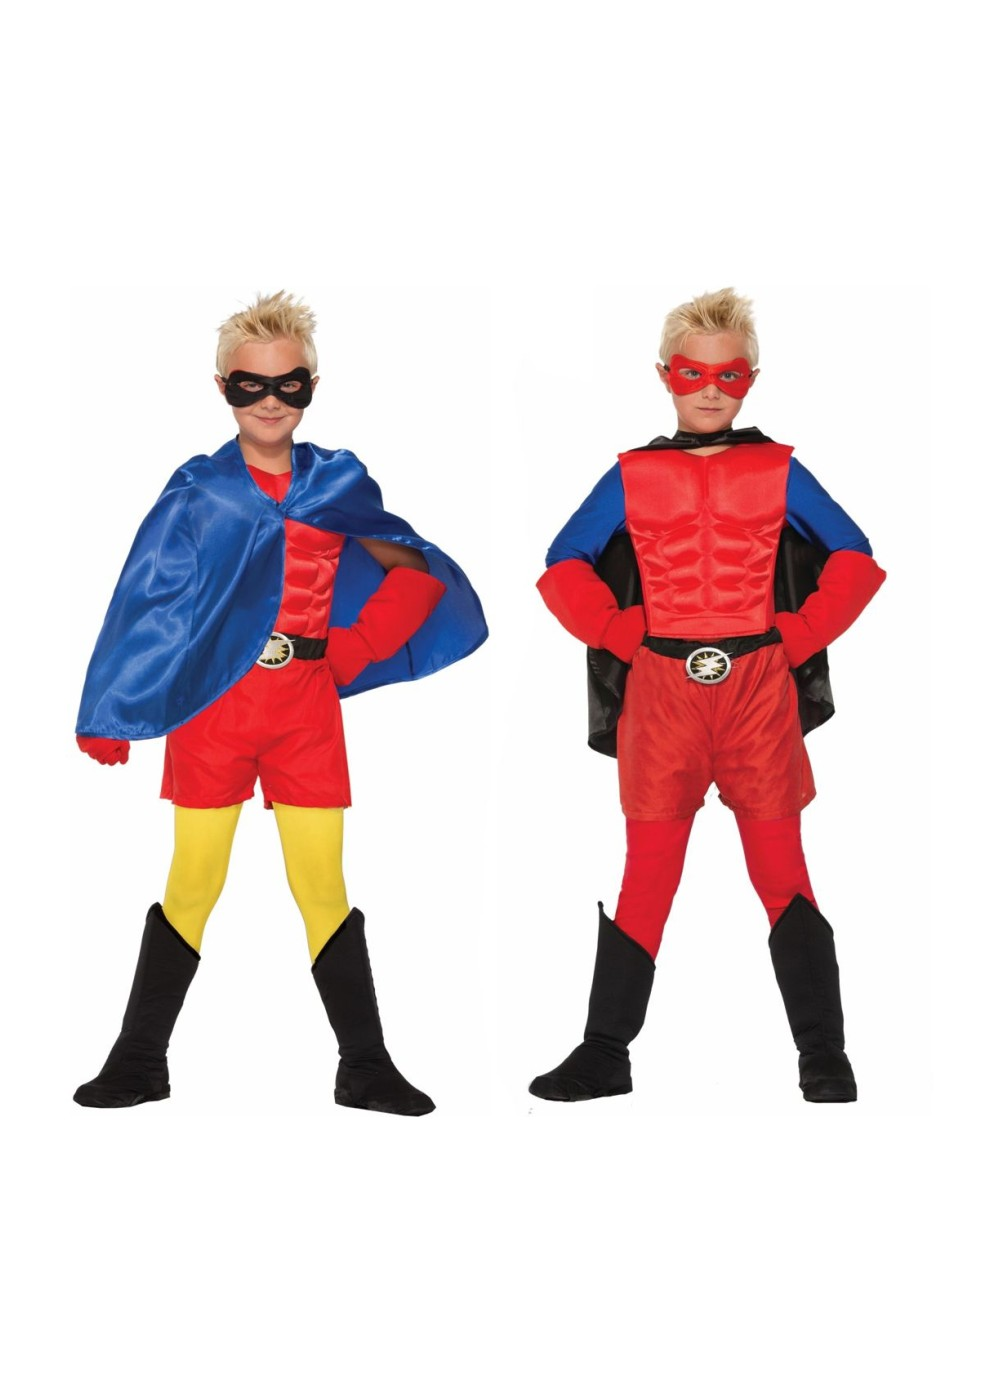 Red and Blue Superhero Kidsu0027 Costume Set  sc 1 st  Wonder Costumes & Generic Superhero Costumes for Halloween Why Not?